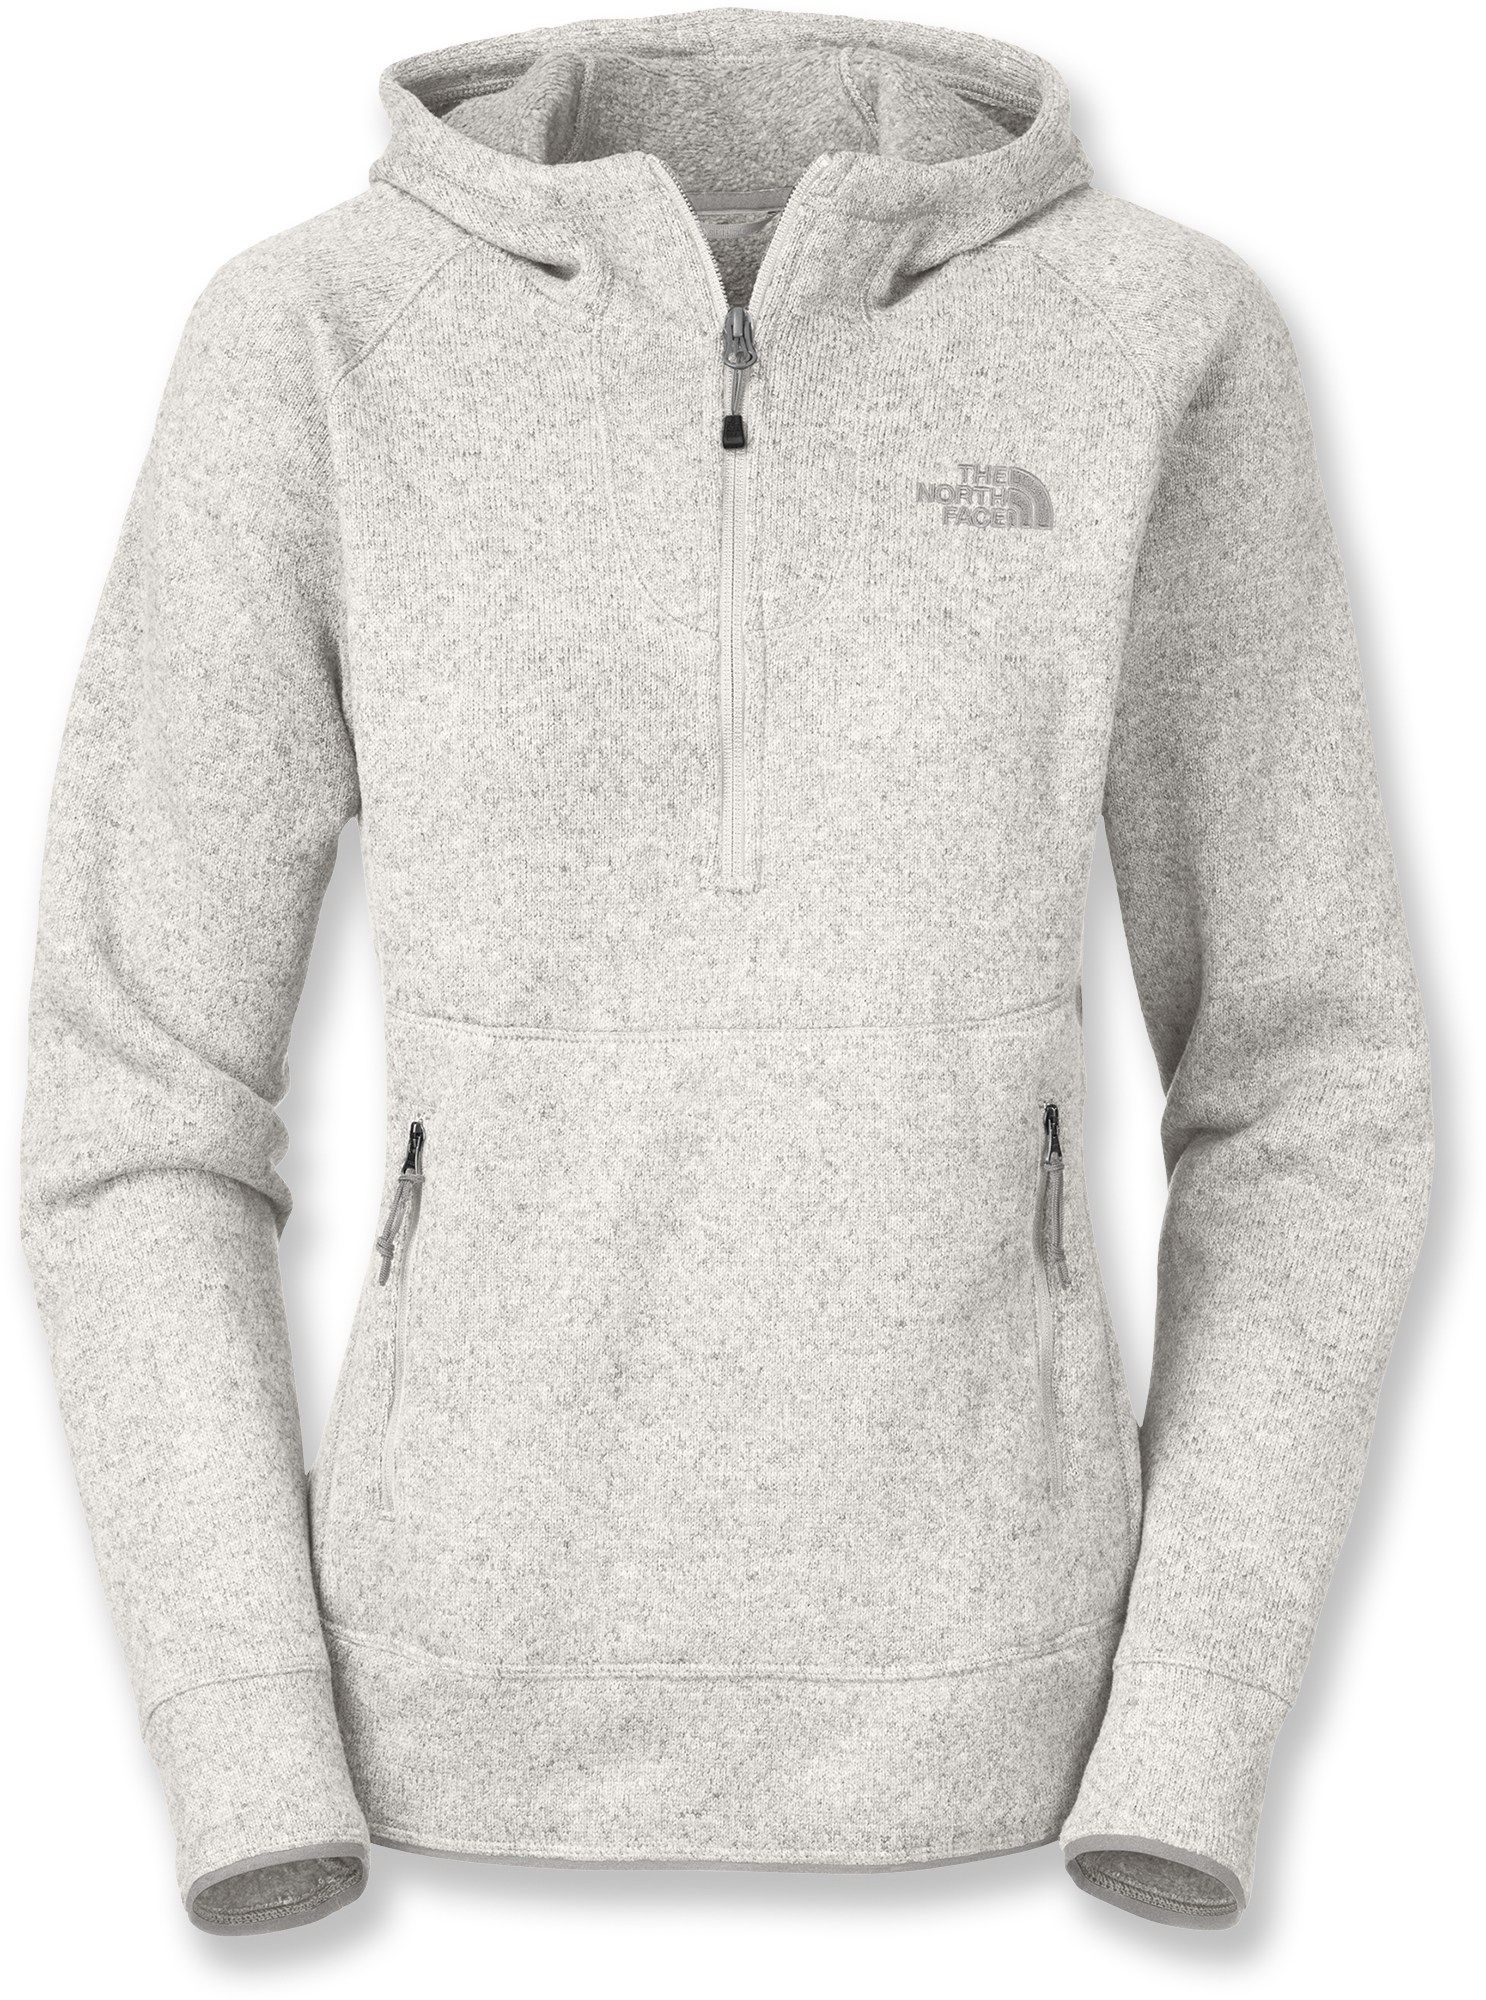 Cozy north face hoodies pinterest comfy cozy and face